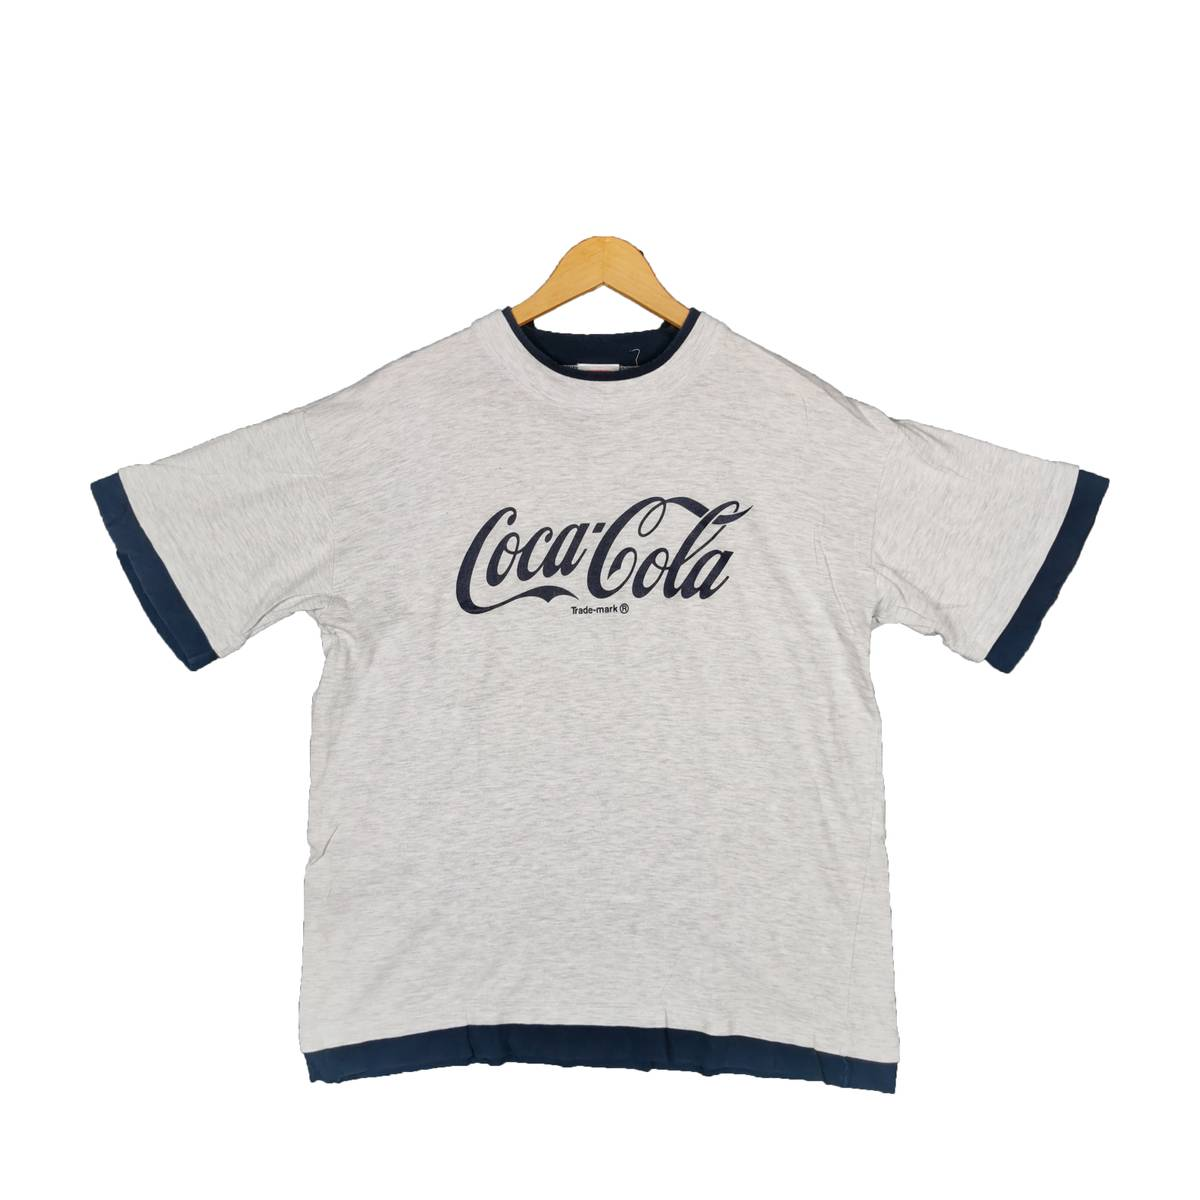 Coke Coca Cola All Over Spellout 1994 Copyrights Tshirt Nice Design VINTAGE!!